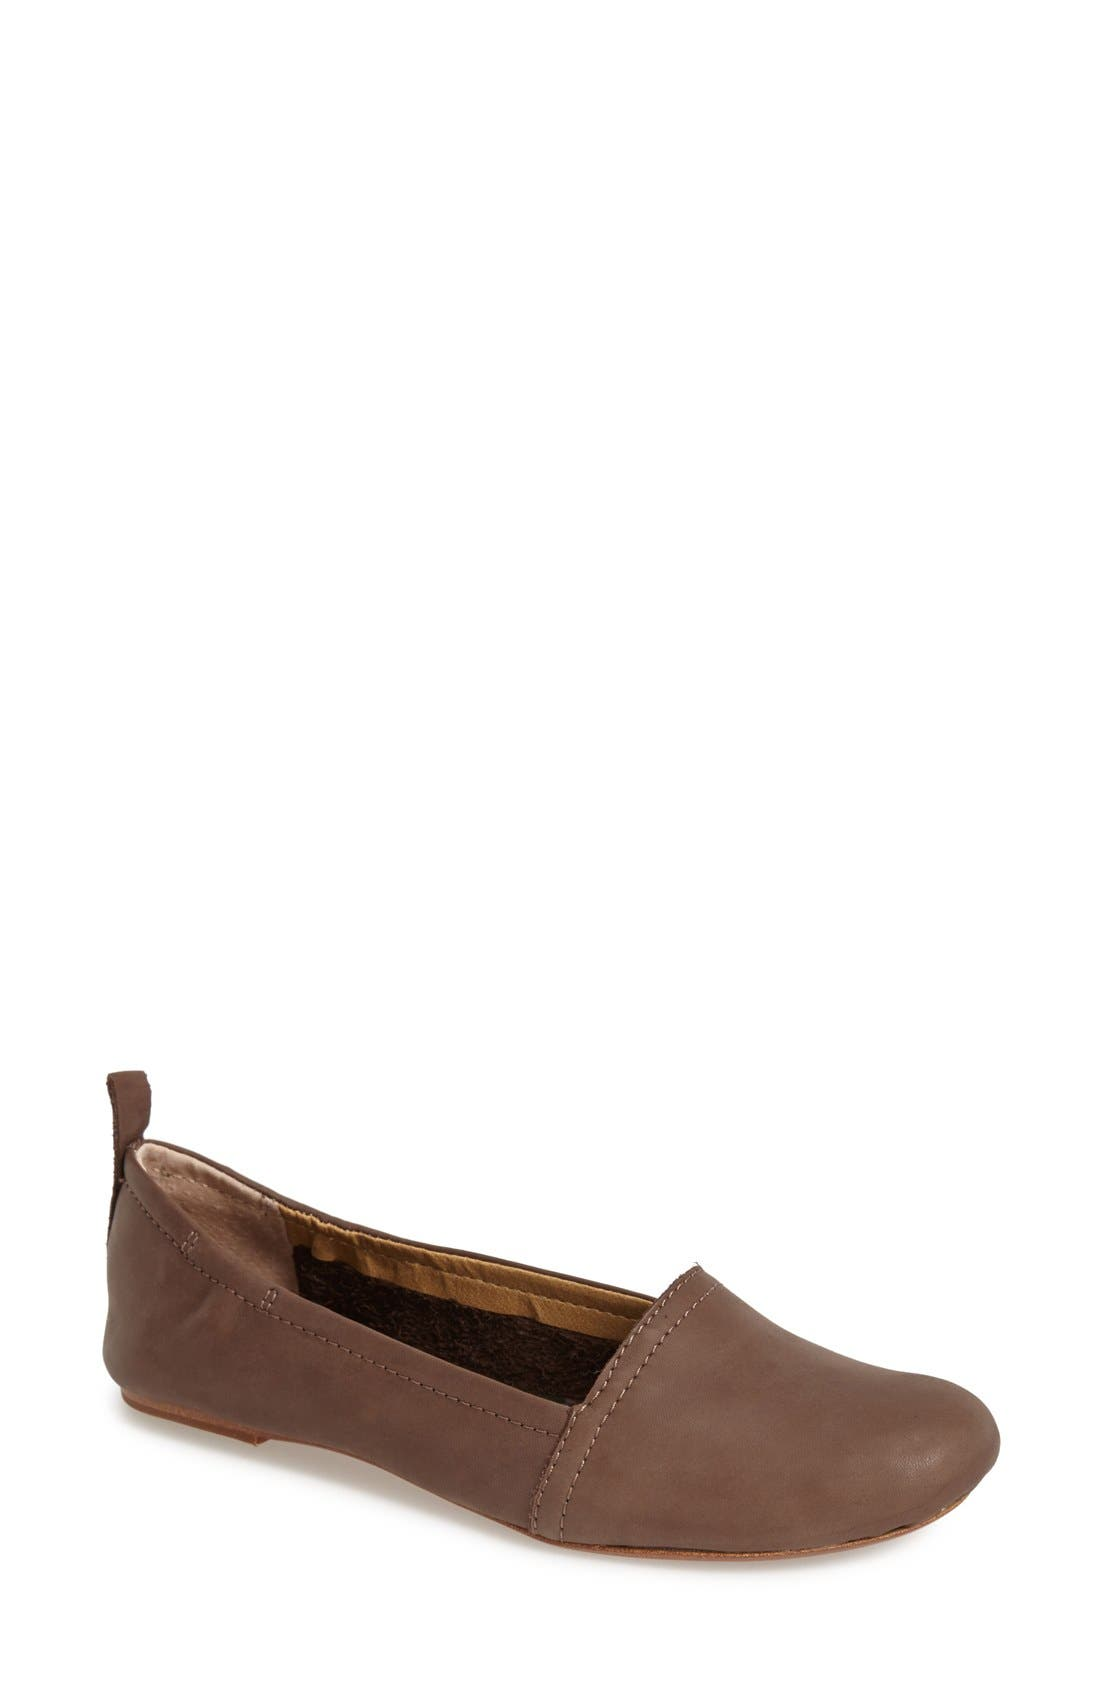 Main Image - Latigo 'Bettie' Leather Flat (Women)